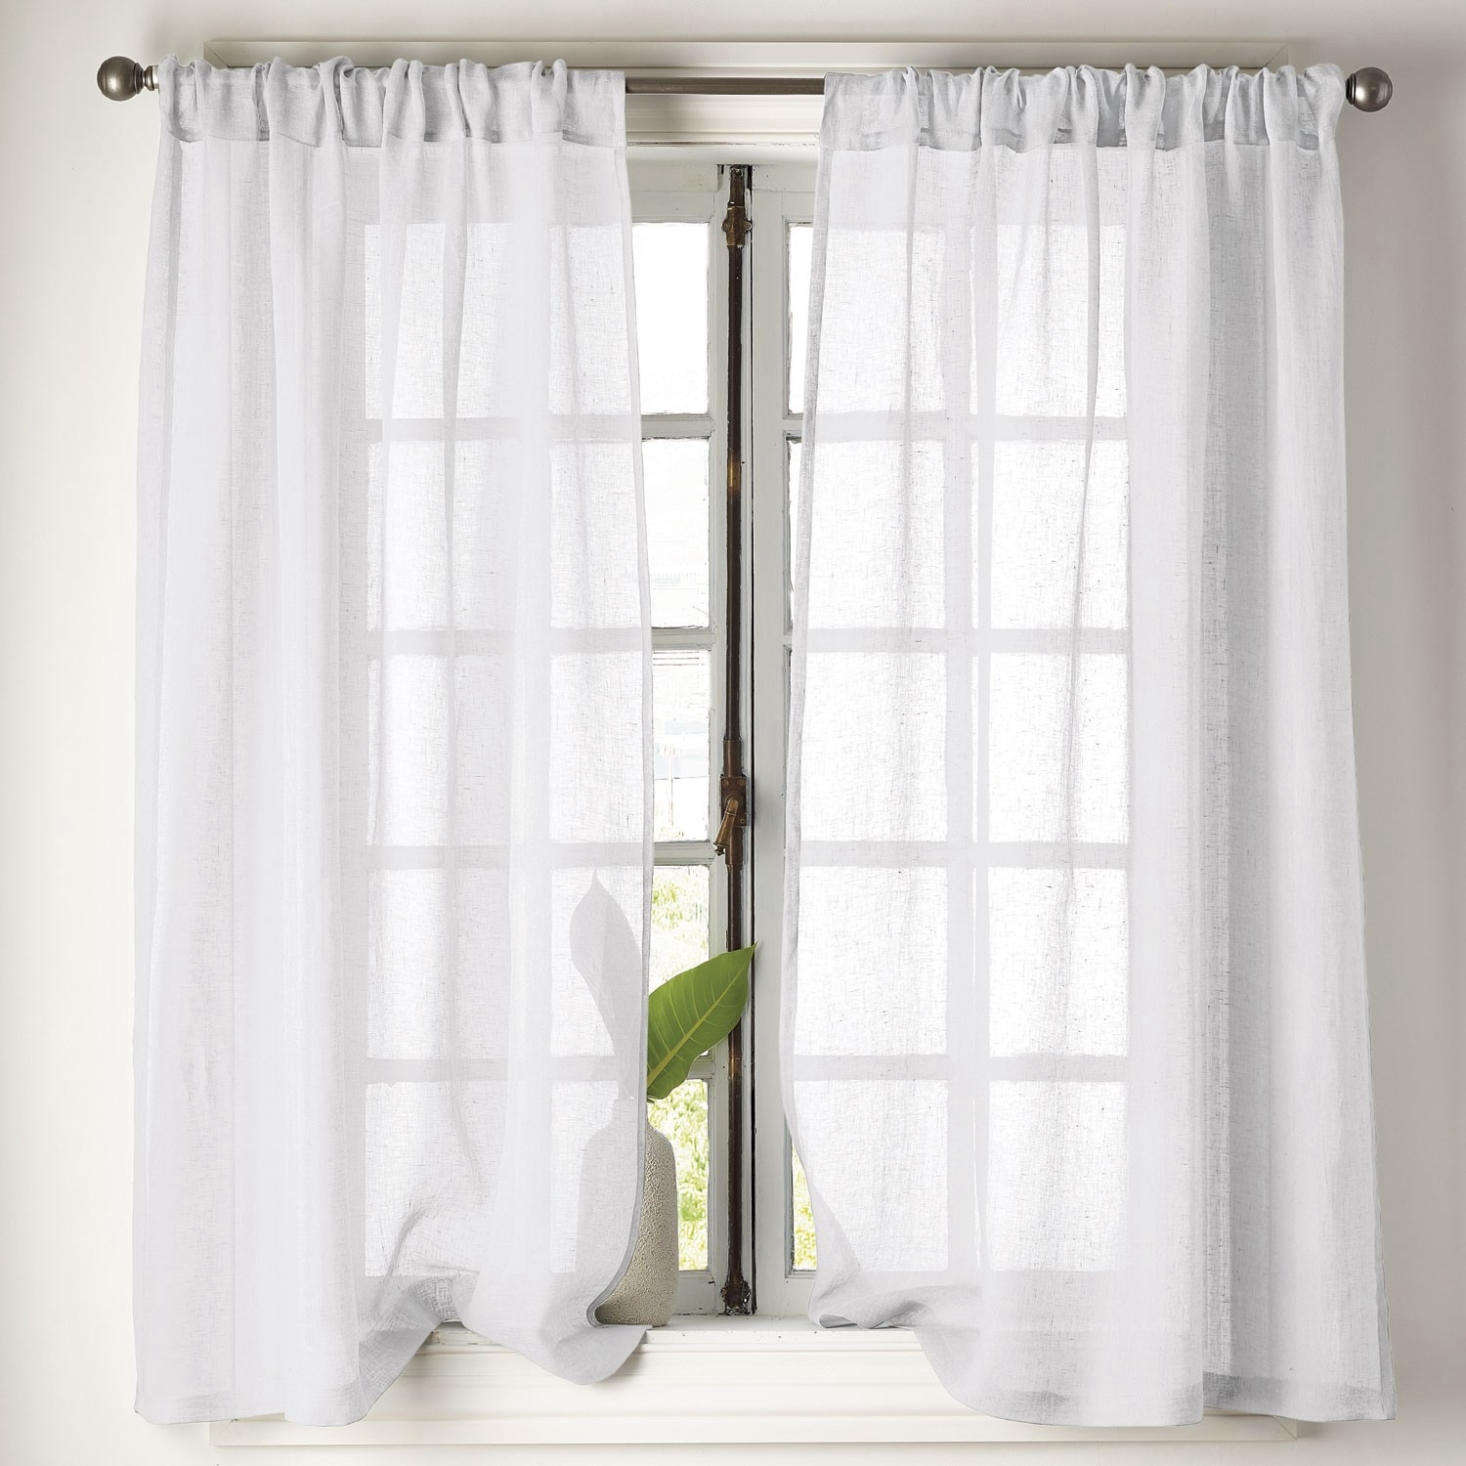 From The Company Store, the Sheer Linen Window Panel starts at $49 per panel and comes in a range of colors.